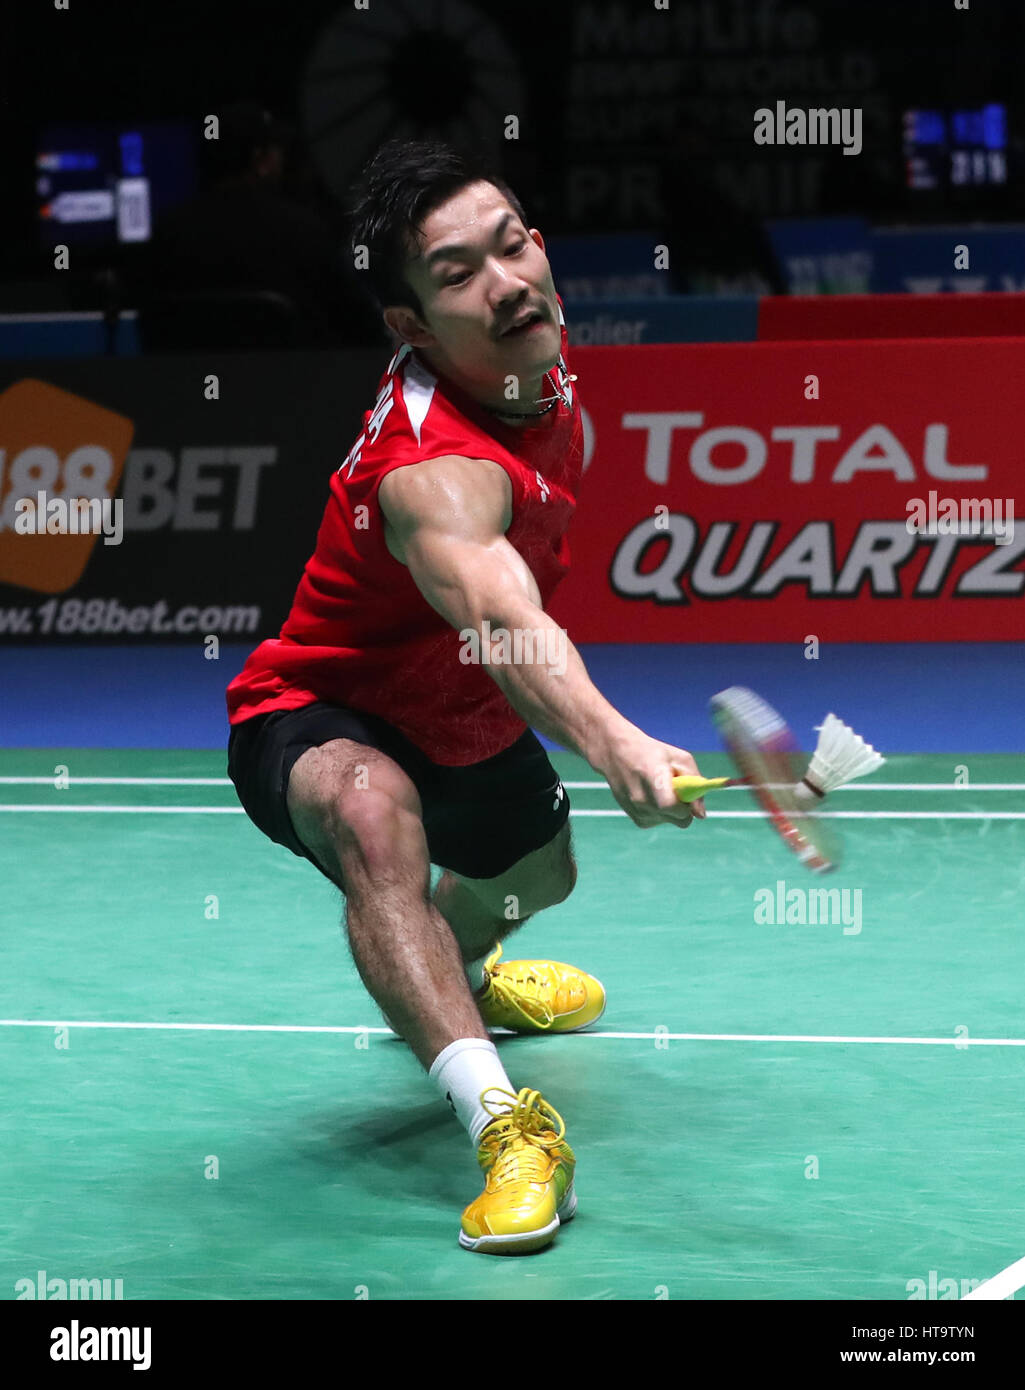 Japan s Keigo Sonoda during his Men s doubles match during day